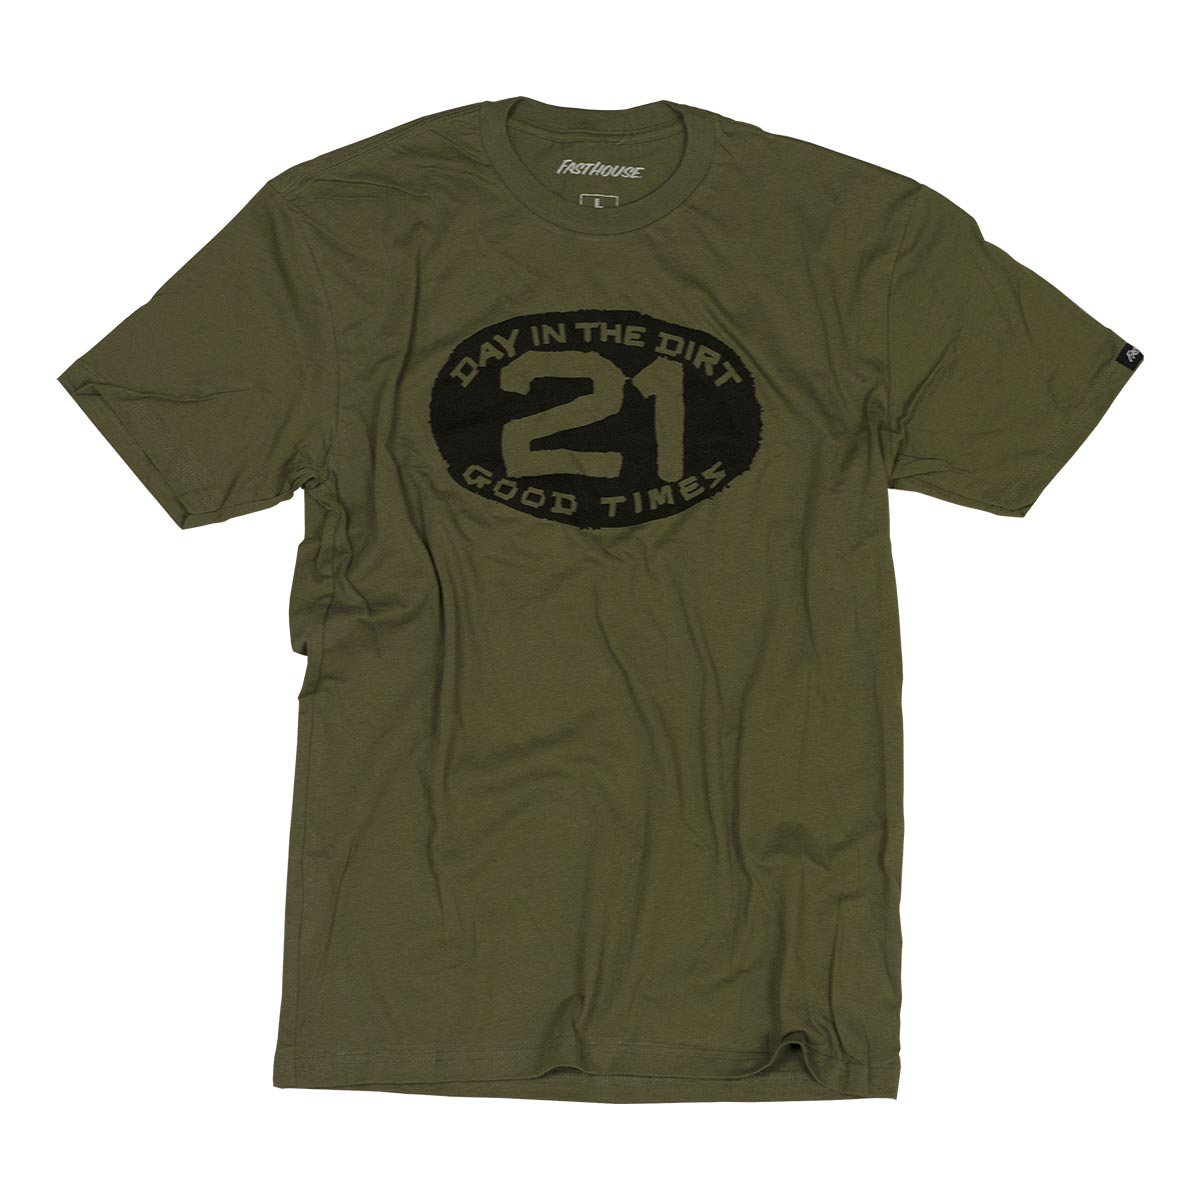 Fasthouse - Day in the Dirt Plate Tee - Military Green